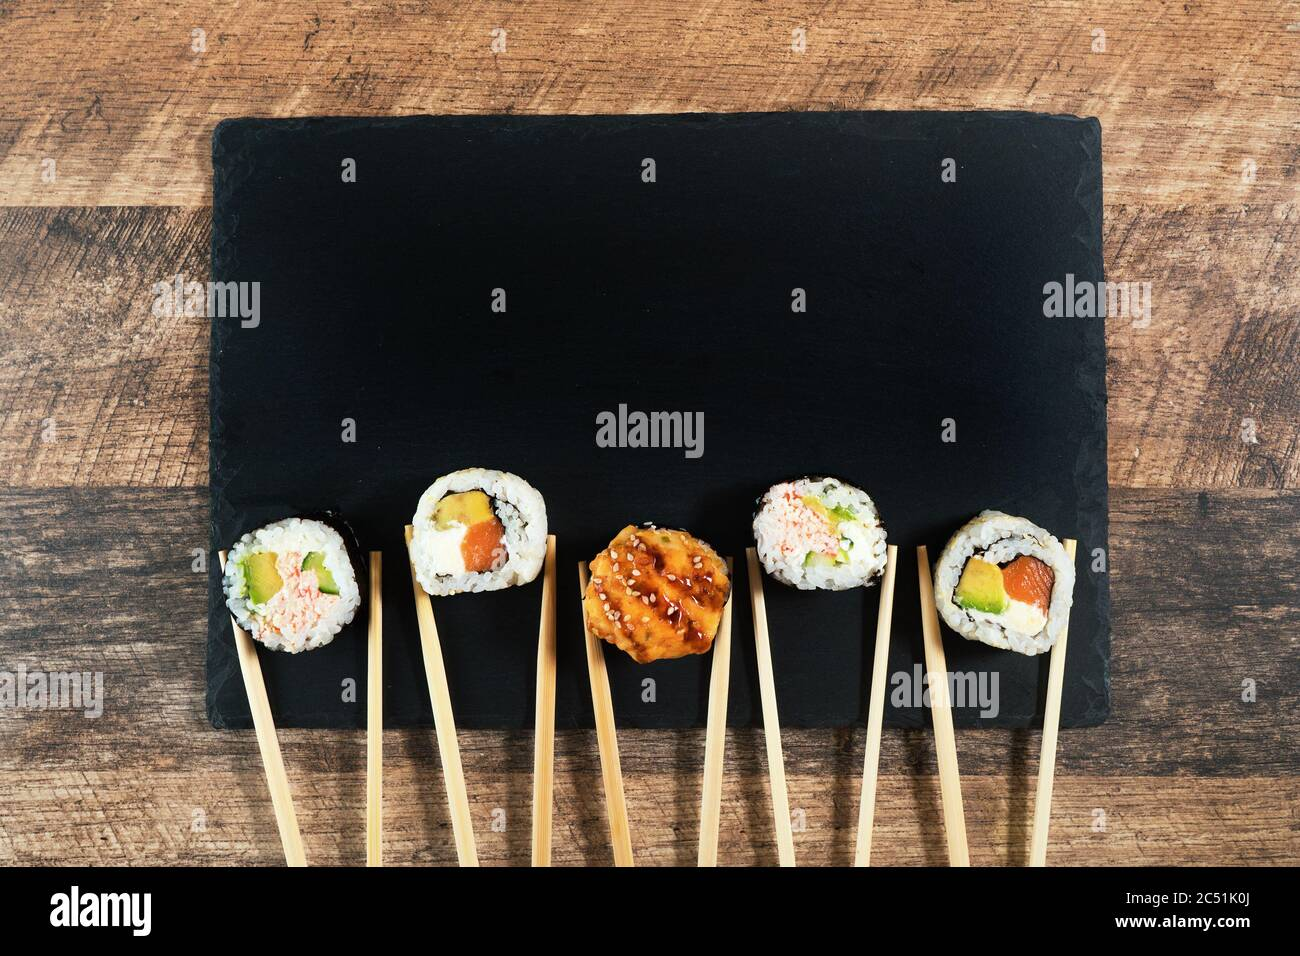 Sushi roll set with chopsticks. Place for your text or logo. Stock Photo